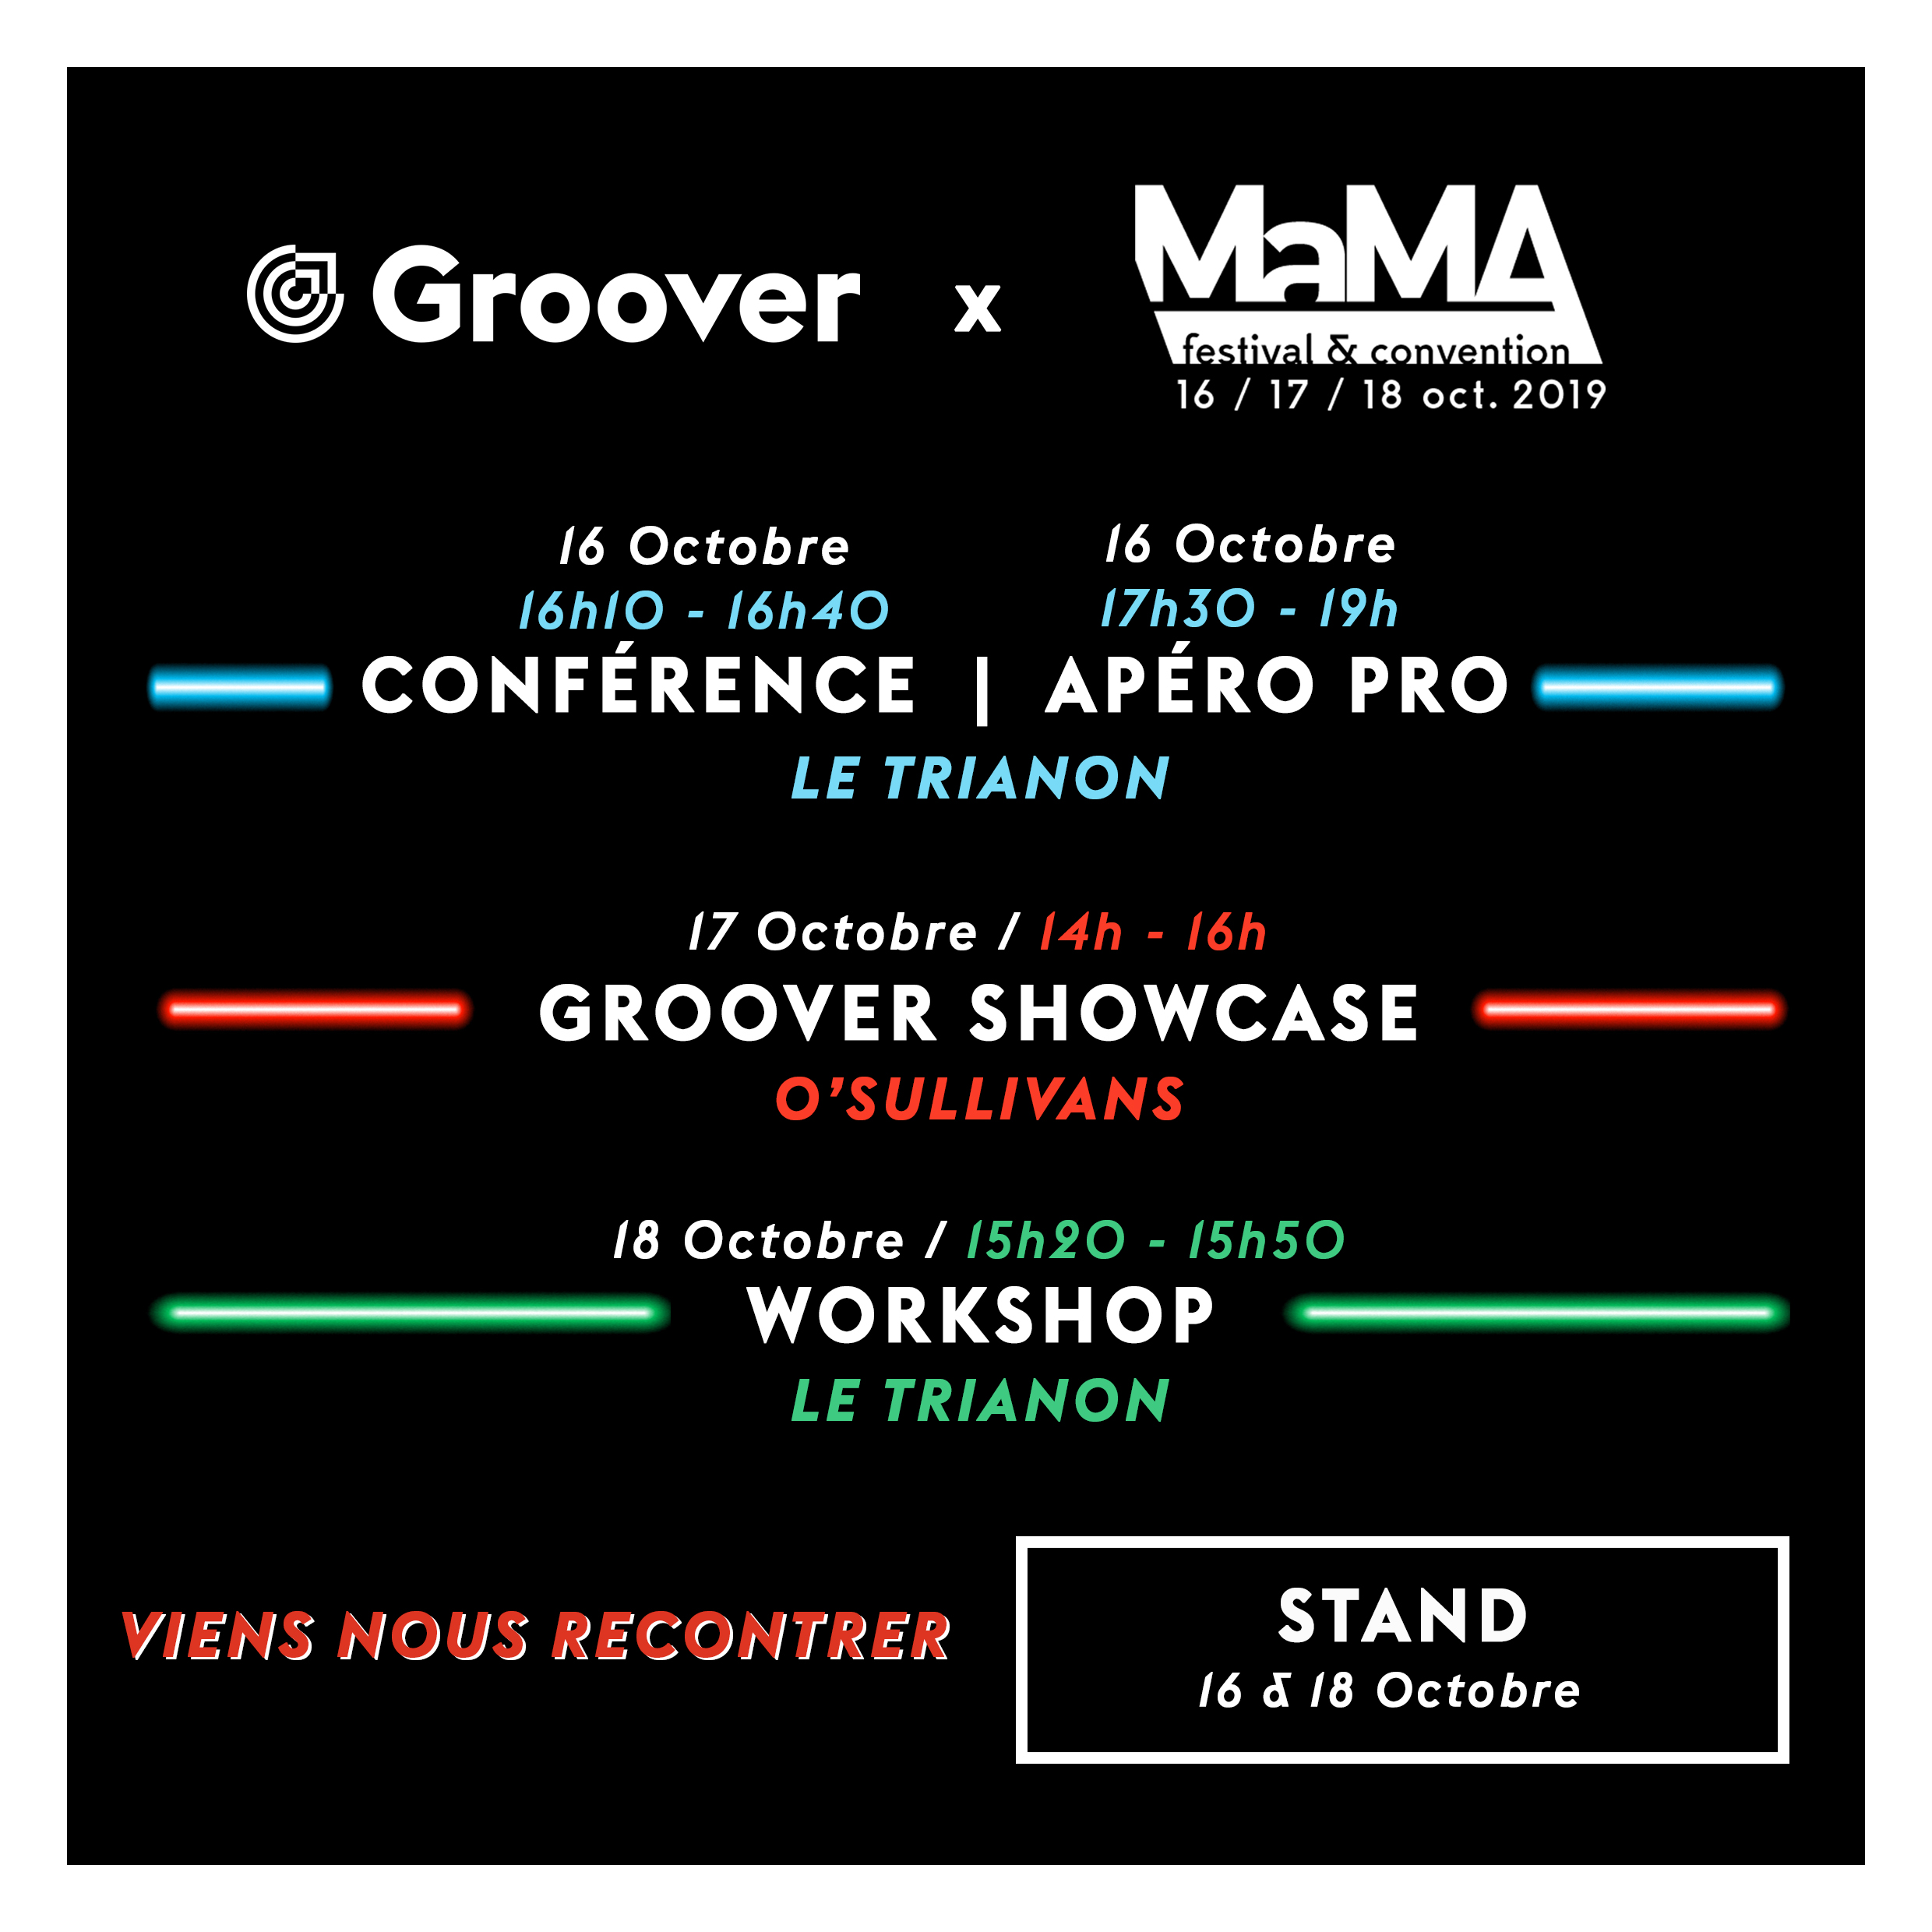 Programme Groover au MaMA